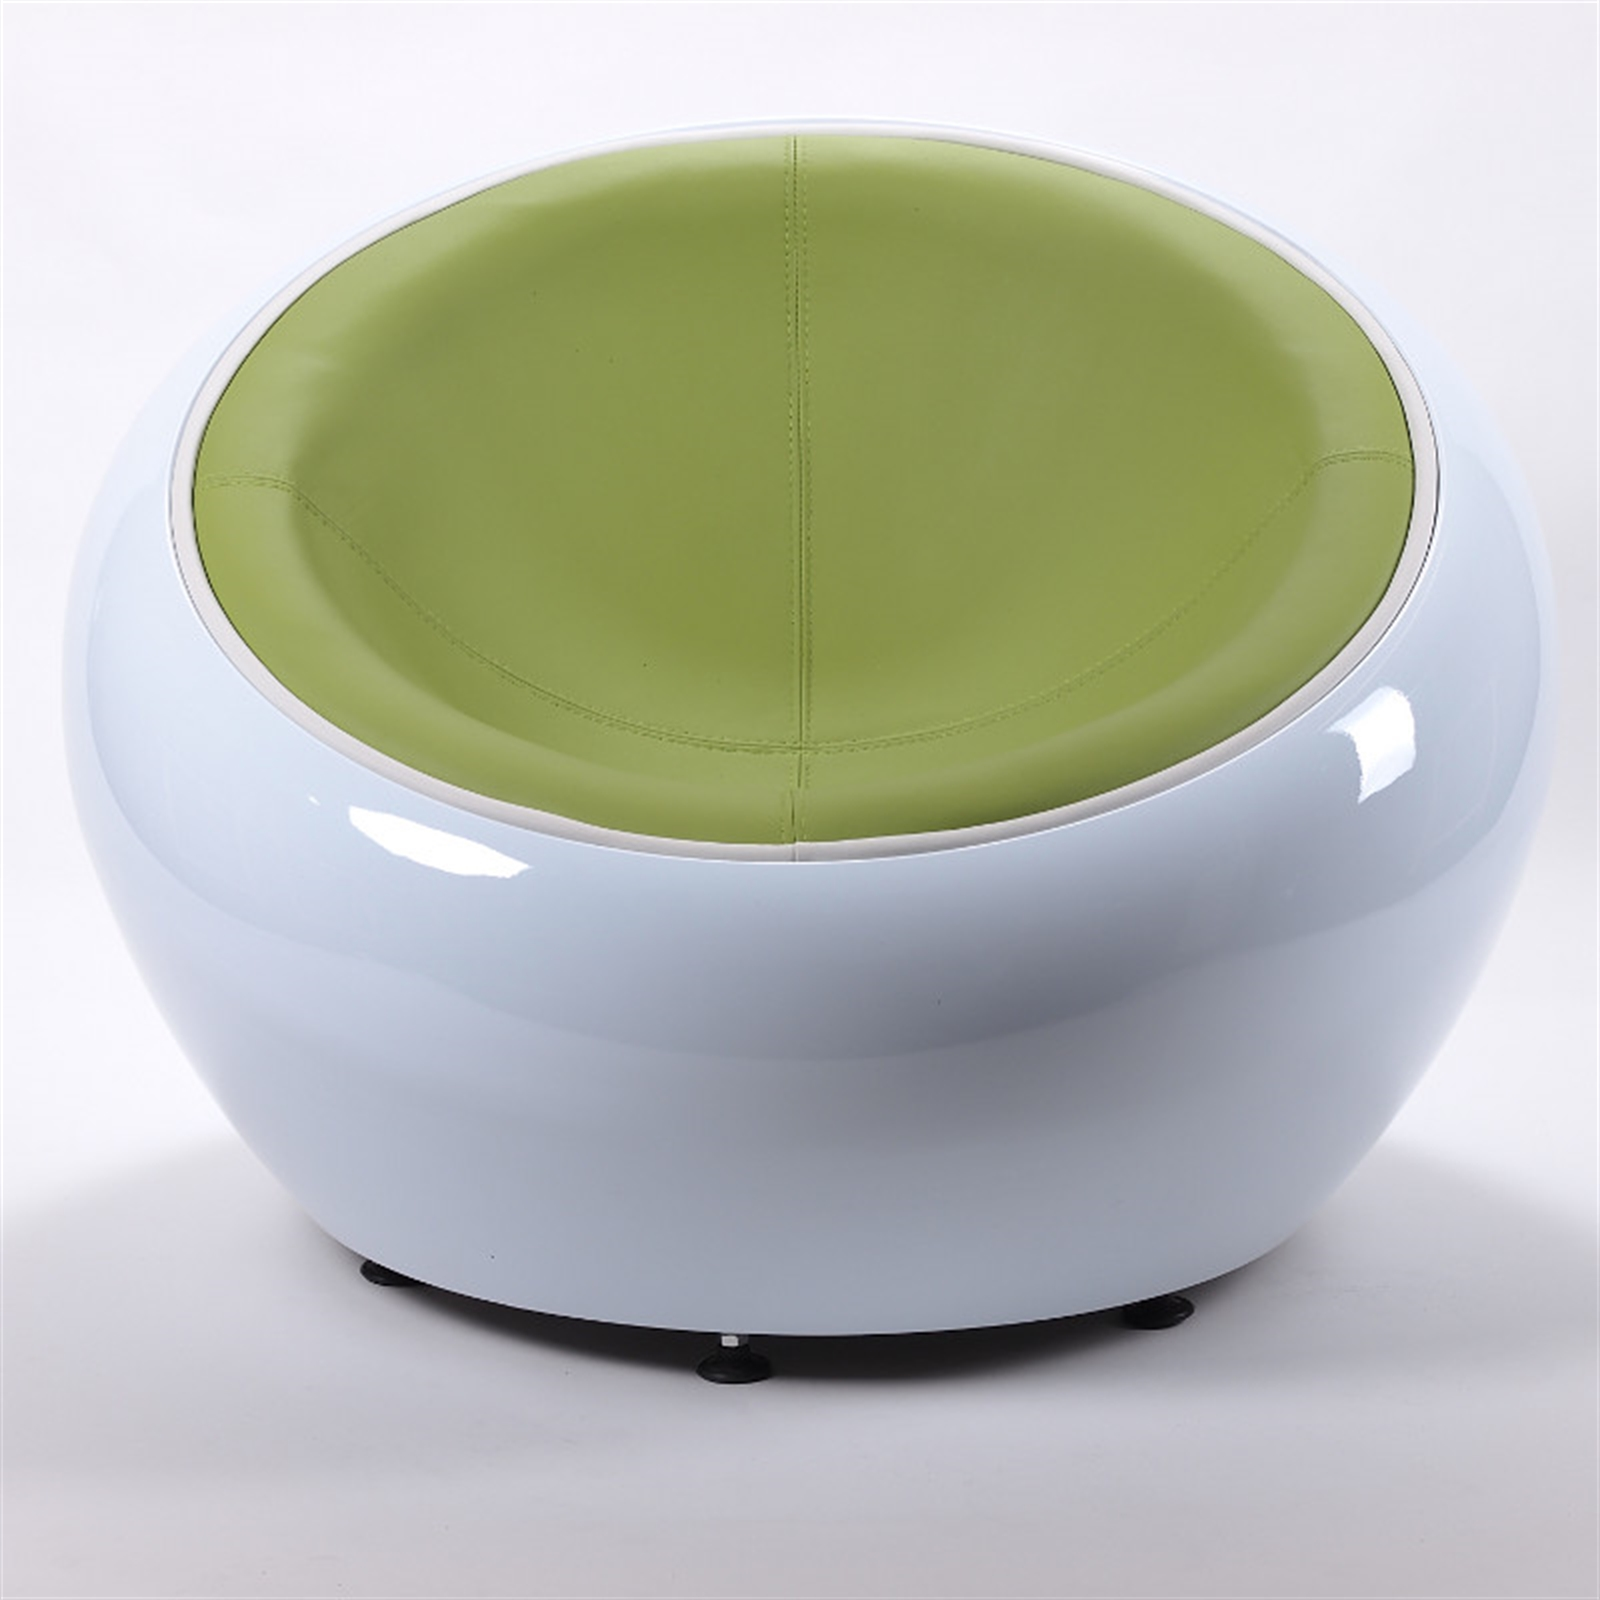 Egg Lounge Sessel Details About Design Egg Chair White Black Shell Bowl Armchair Lounge Design Top